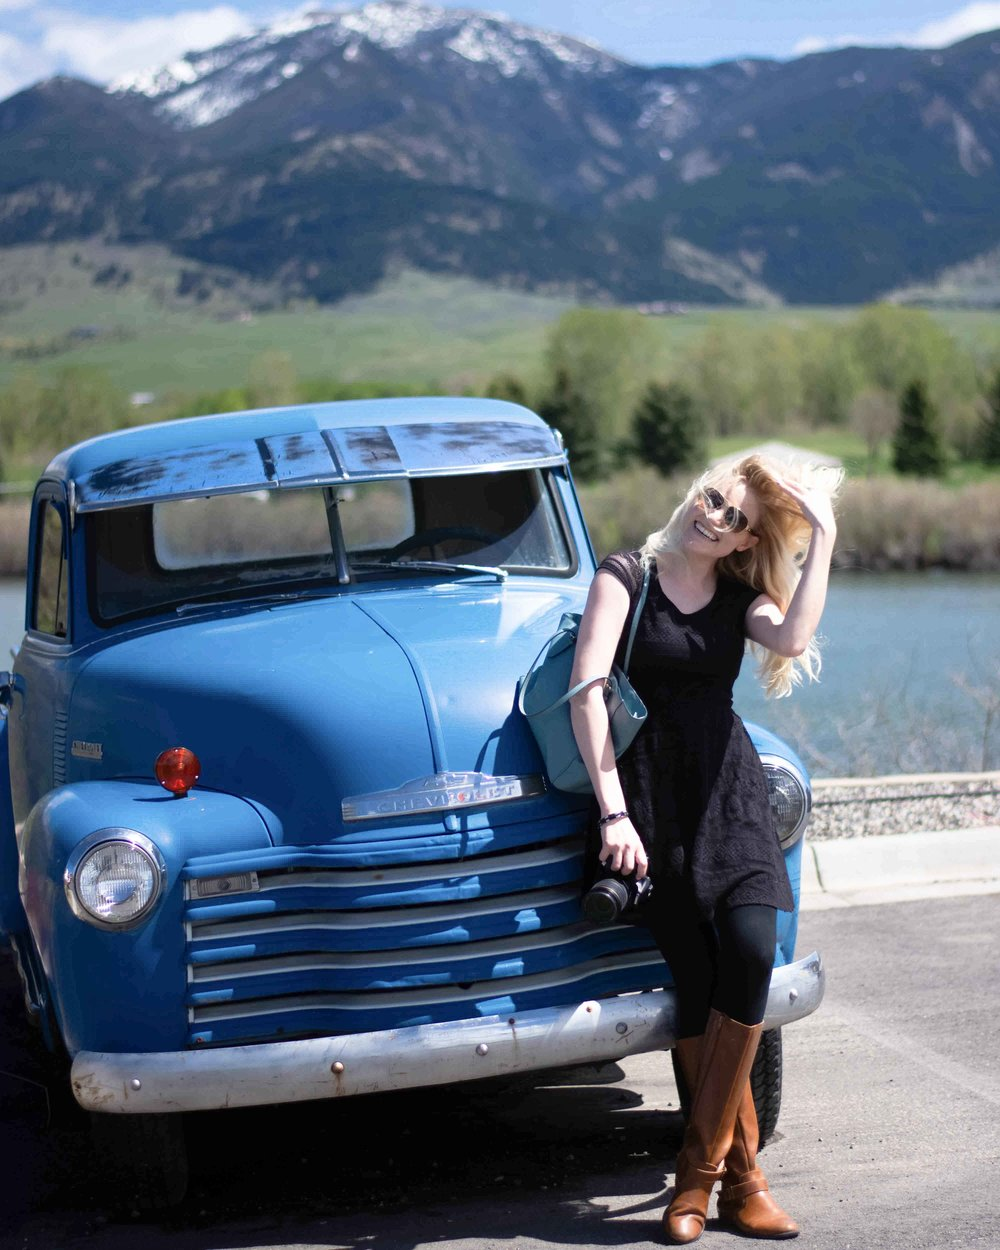 Lifestyle and travel blogger Bri Sul touring beautiful Bozeman, Montana